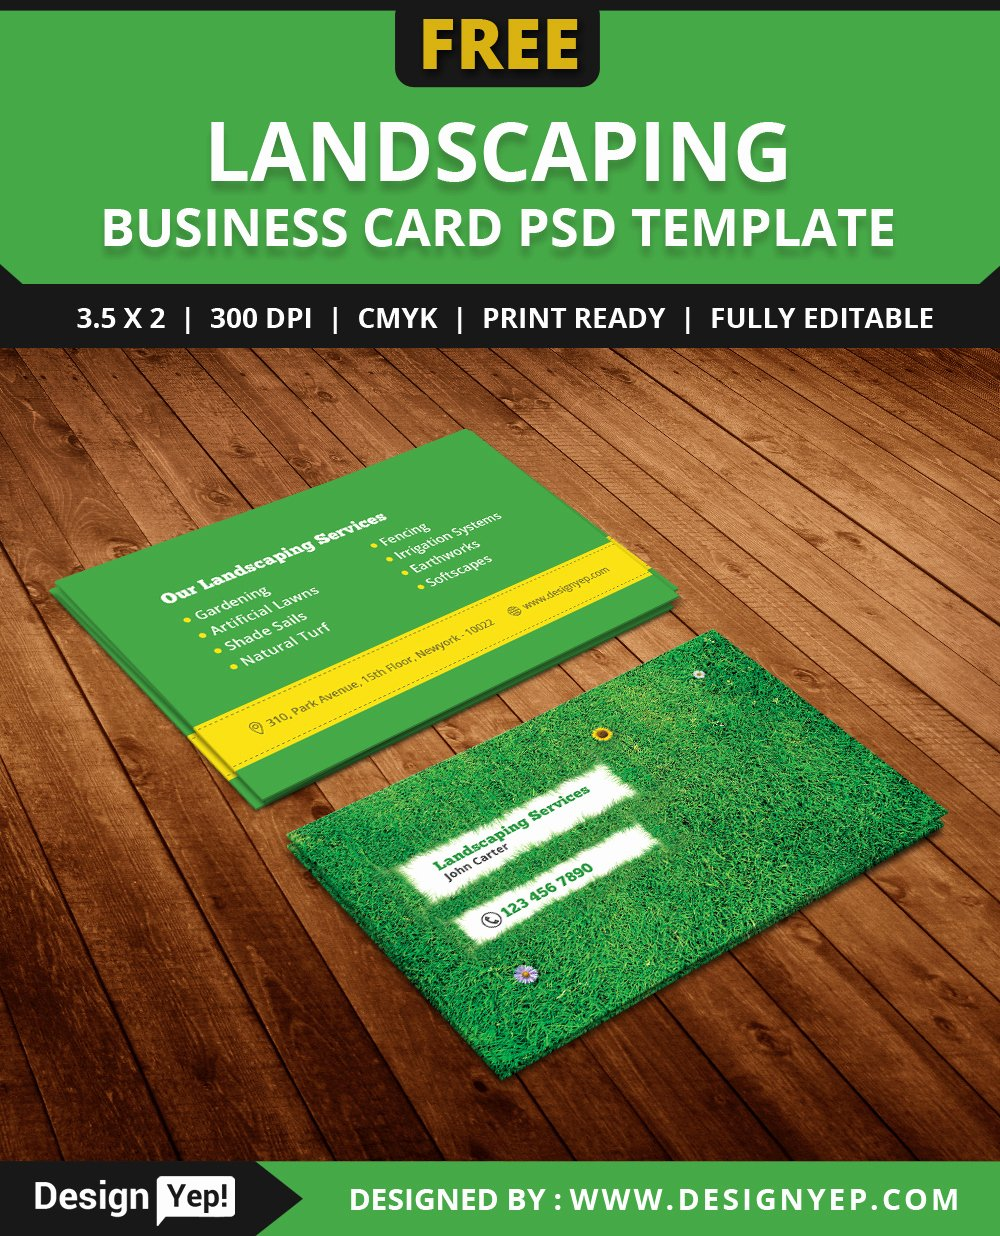 Landscaping Business Cards Templates Free Lovely Free Landscaping Business Card Template Psd Designyep